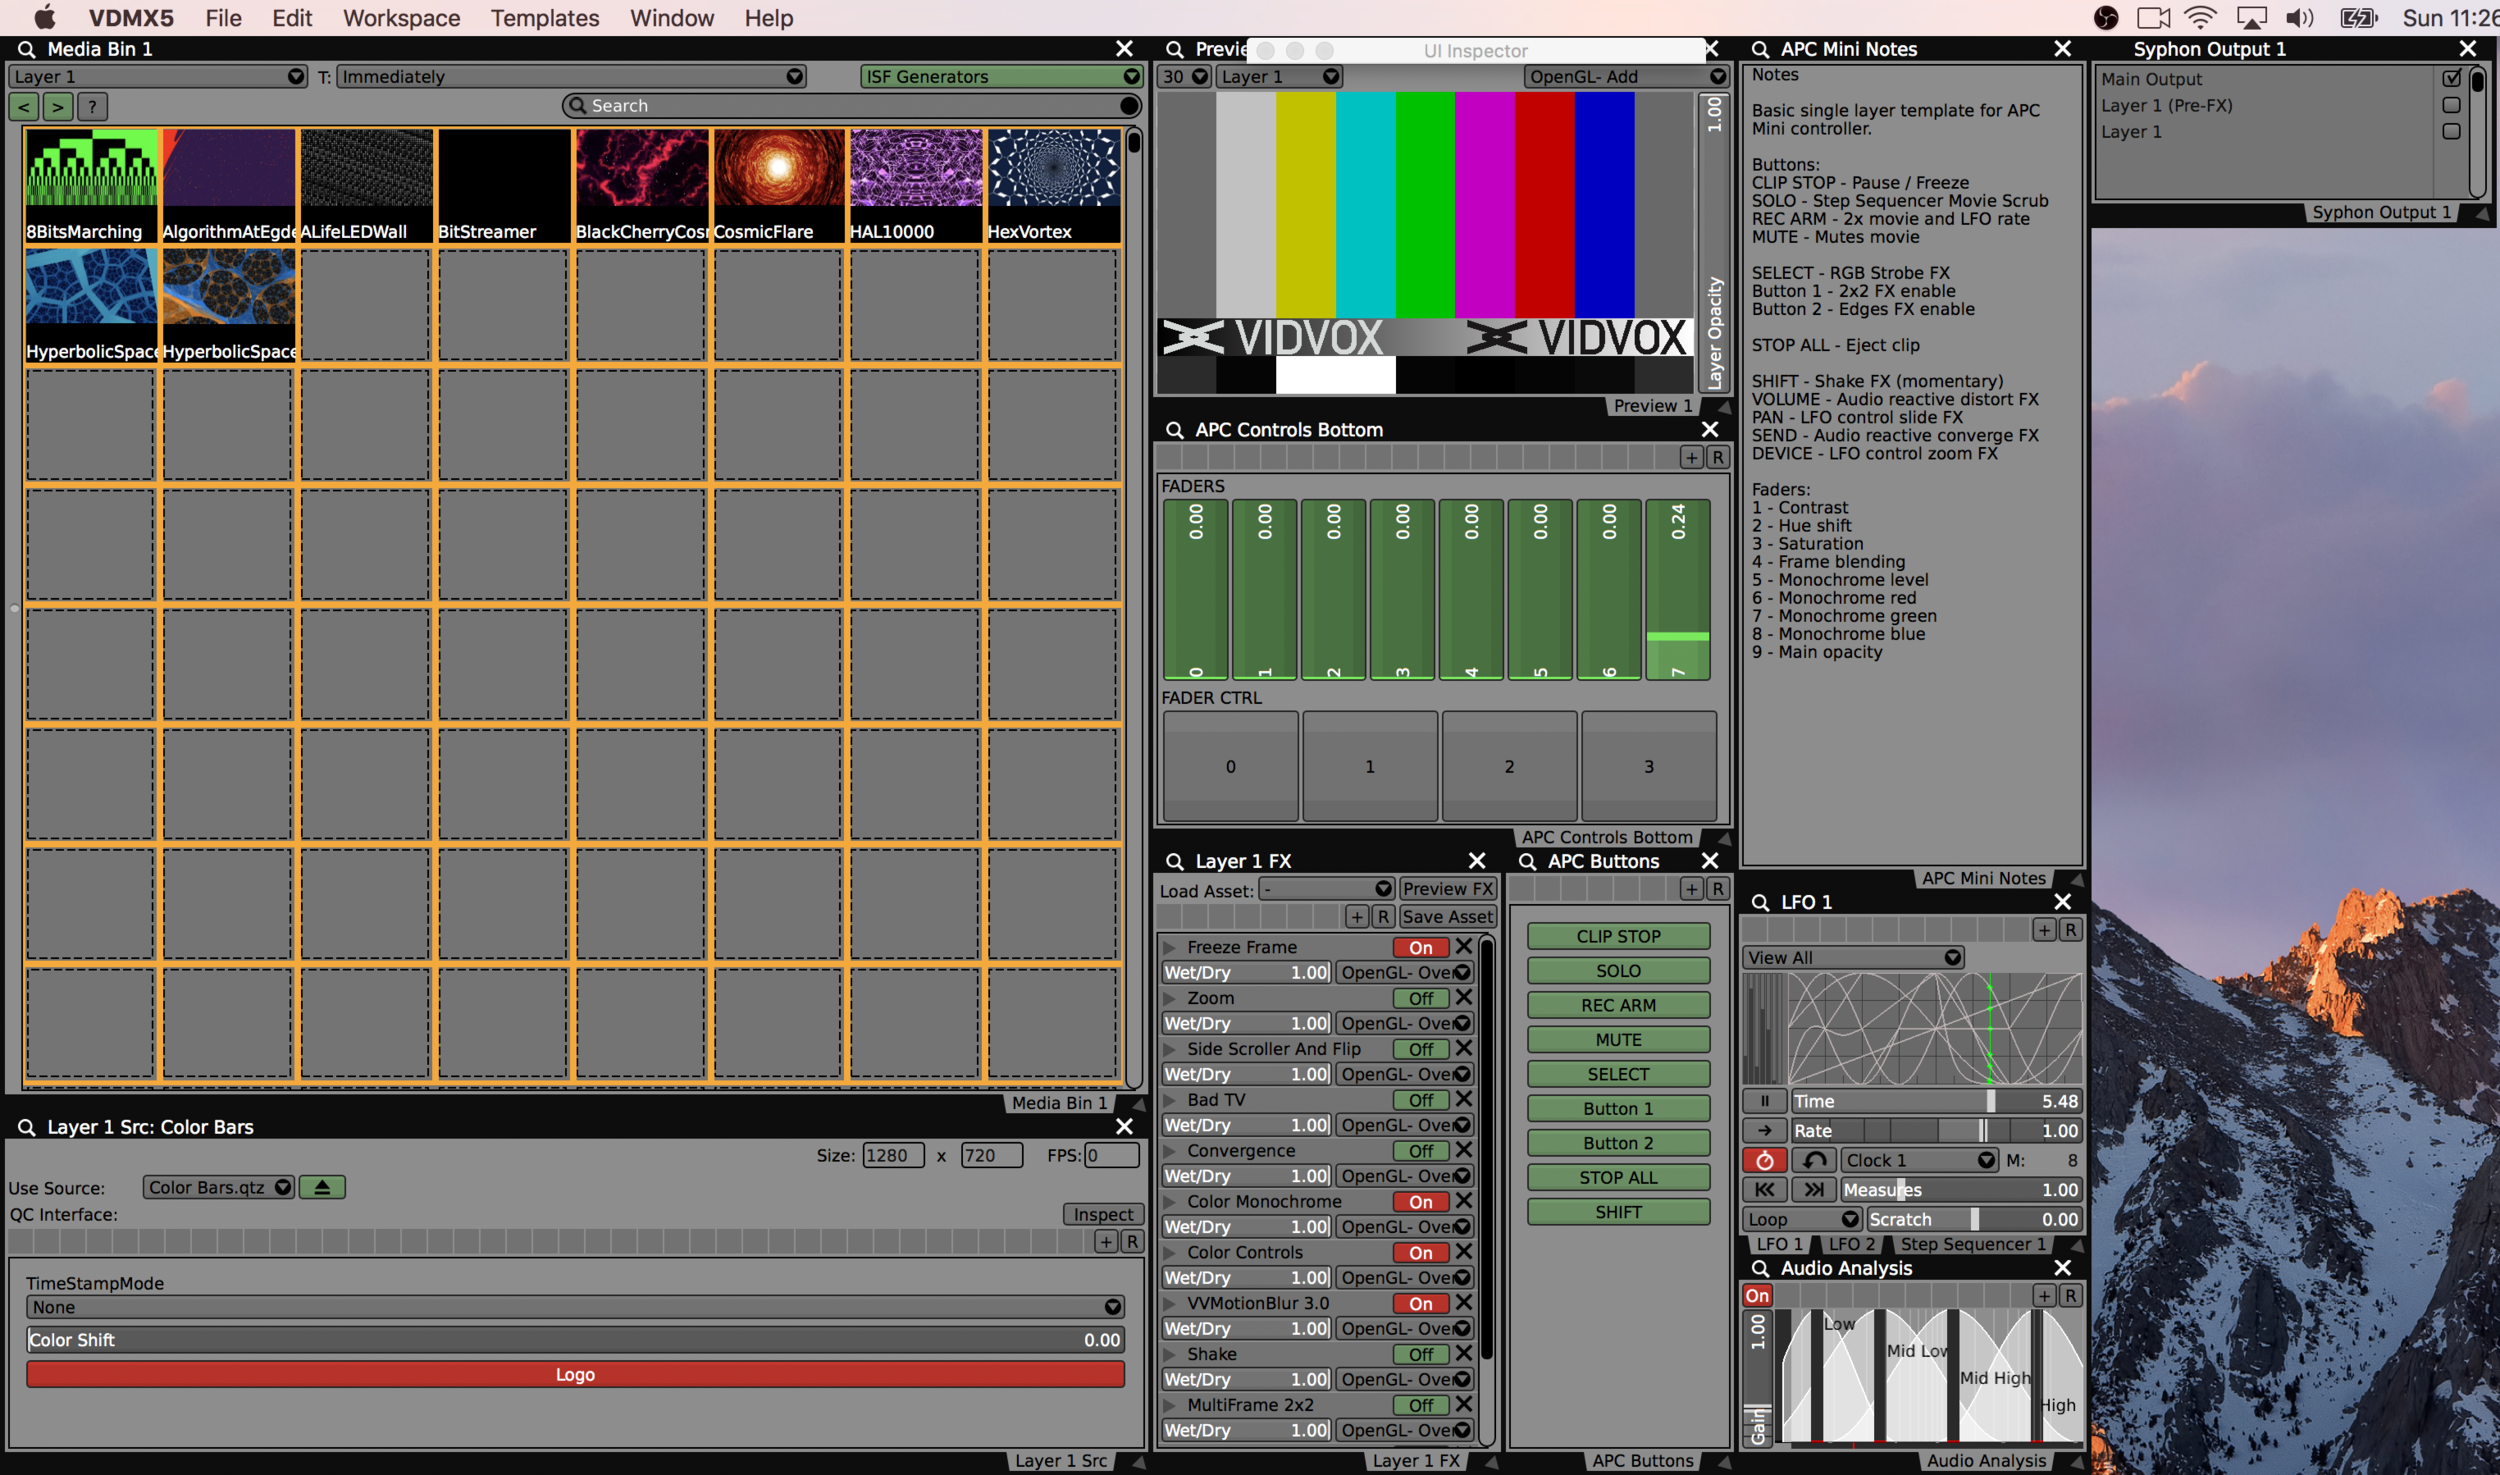 The Syphon Output plugin can be easily added to existing VDMX projects and templates.